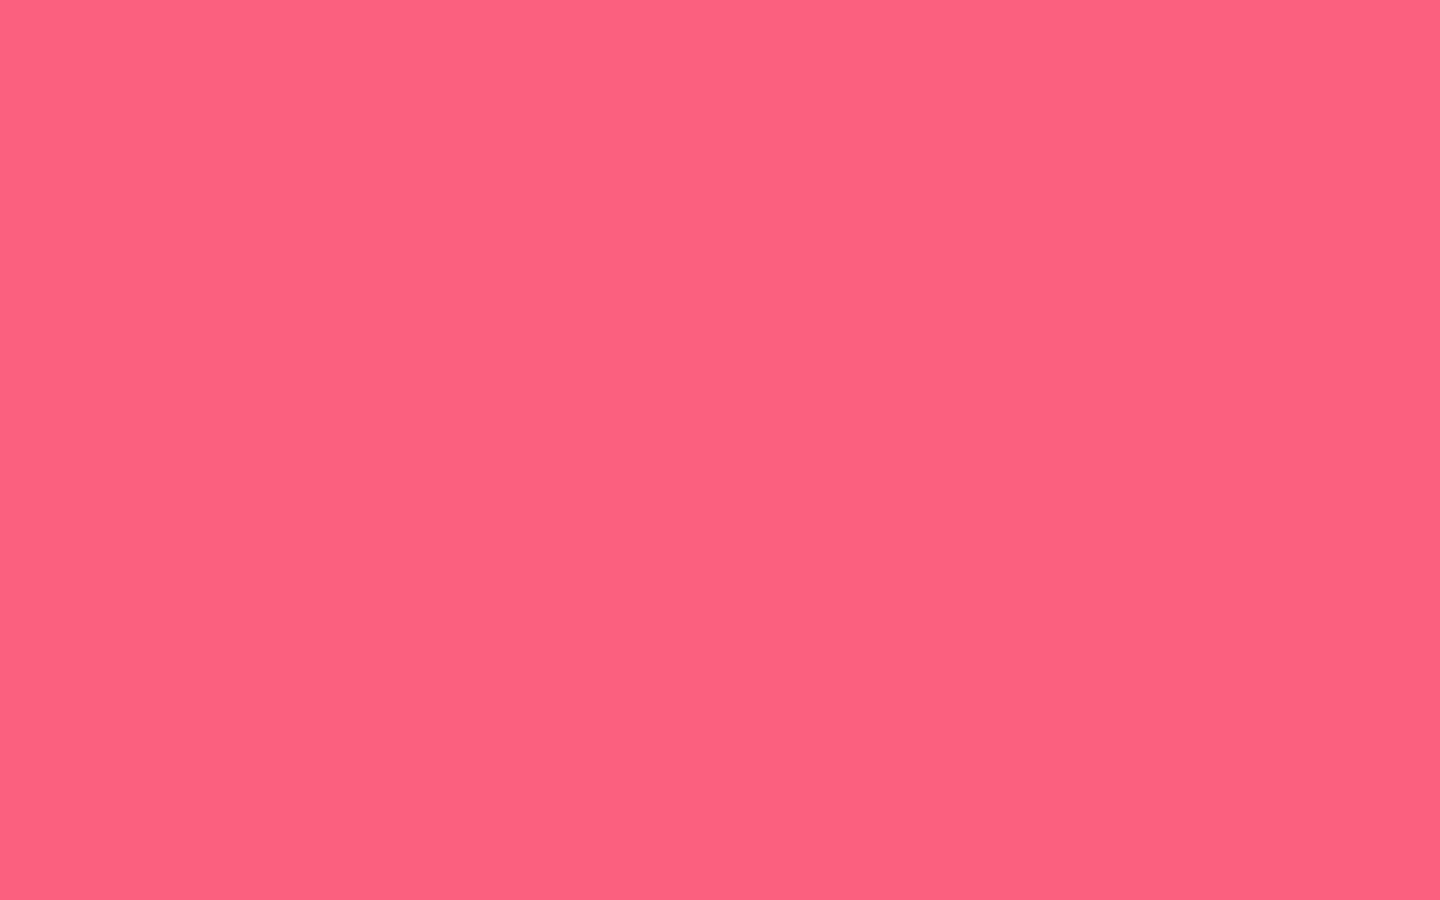 1440x900 Brink Pink Solid Color Background